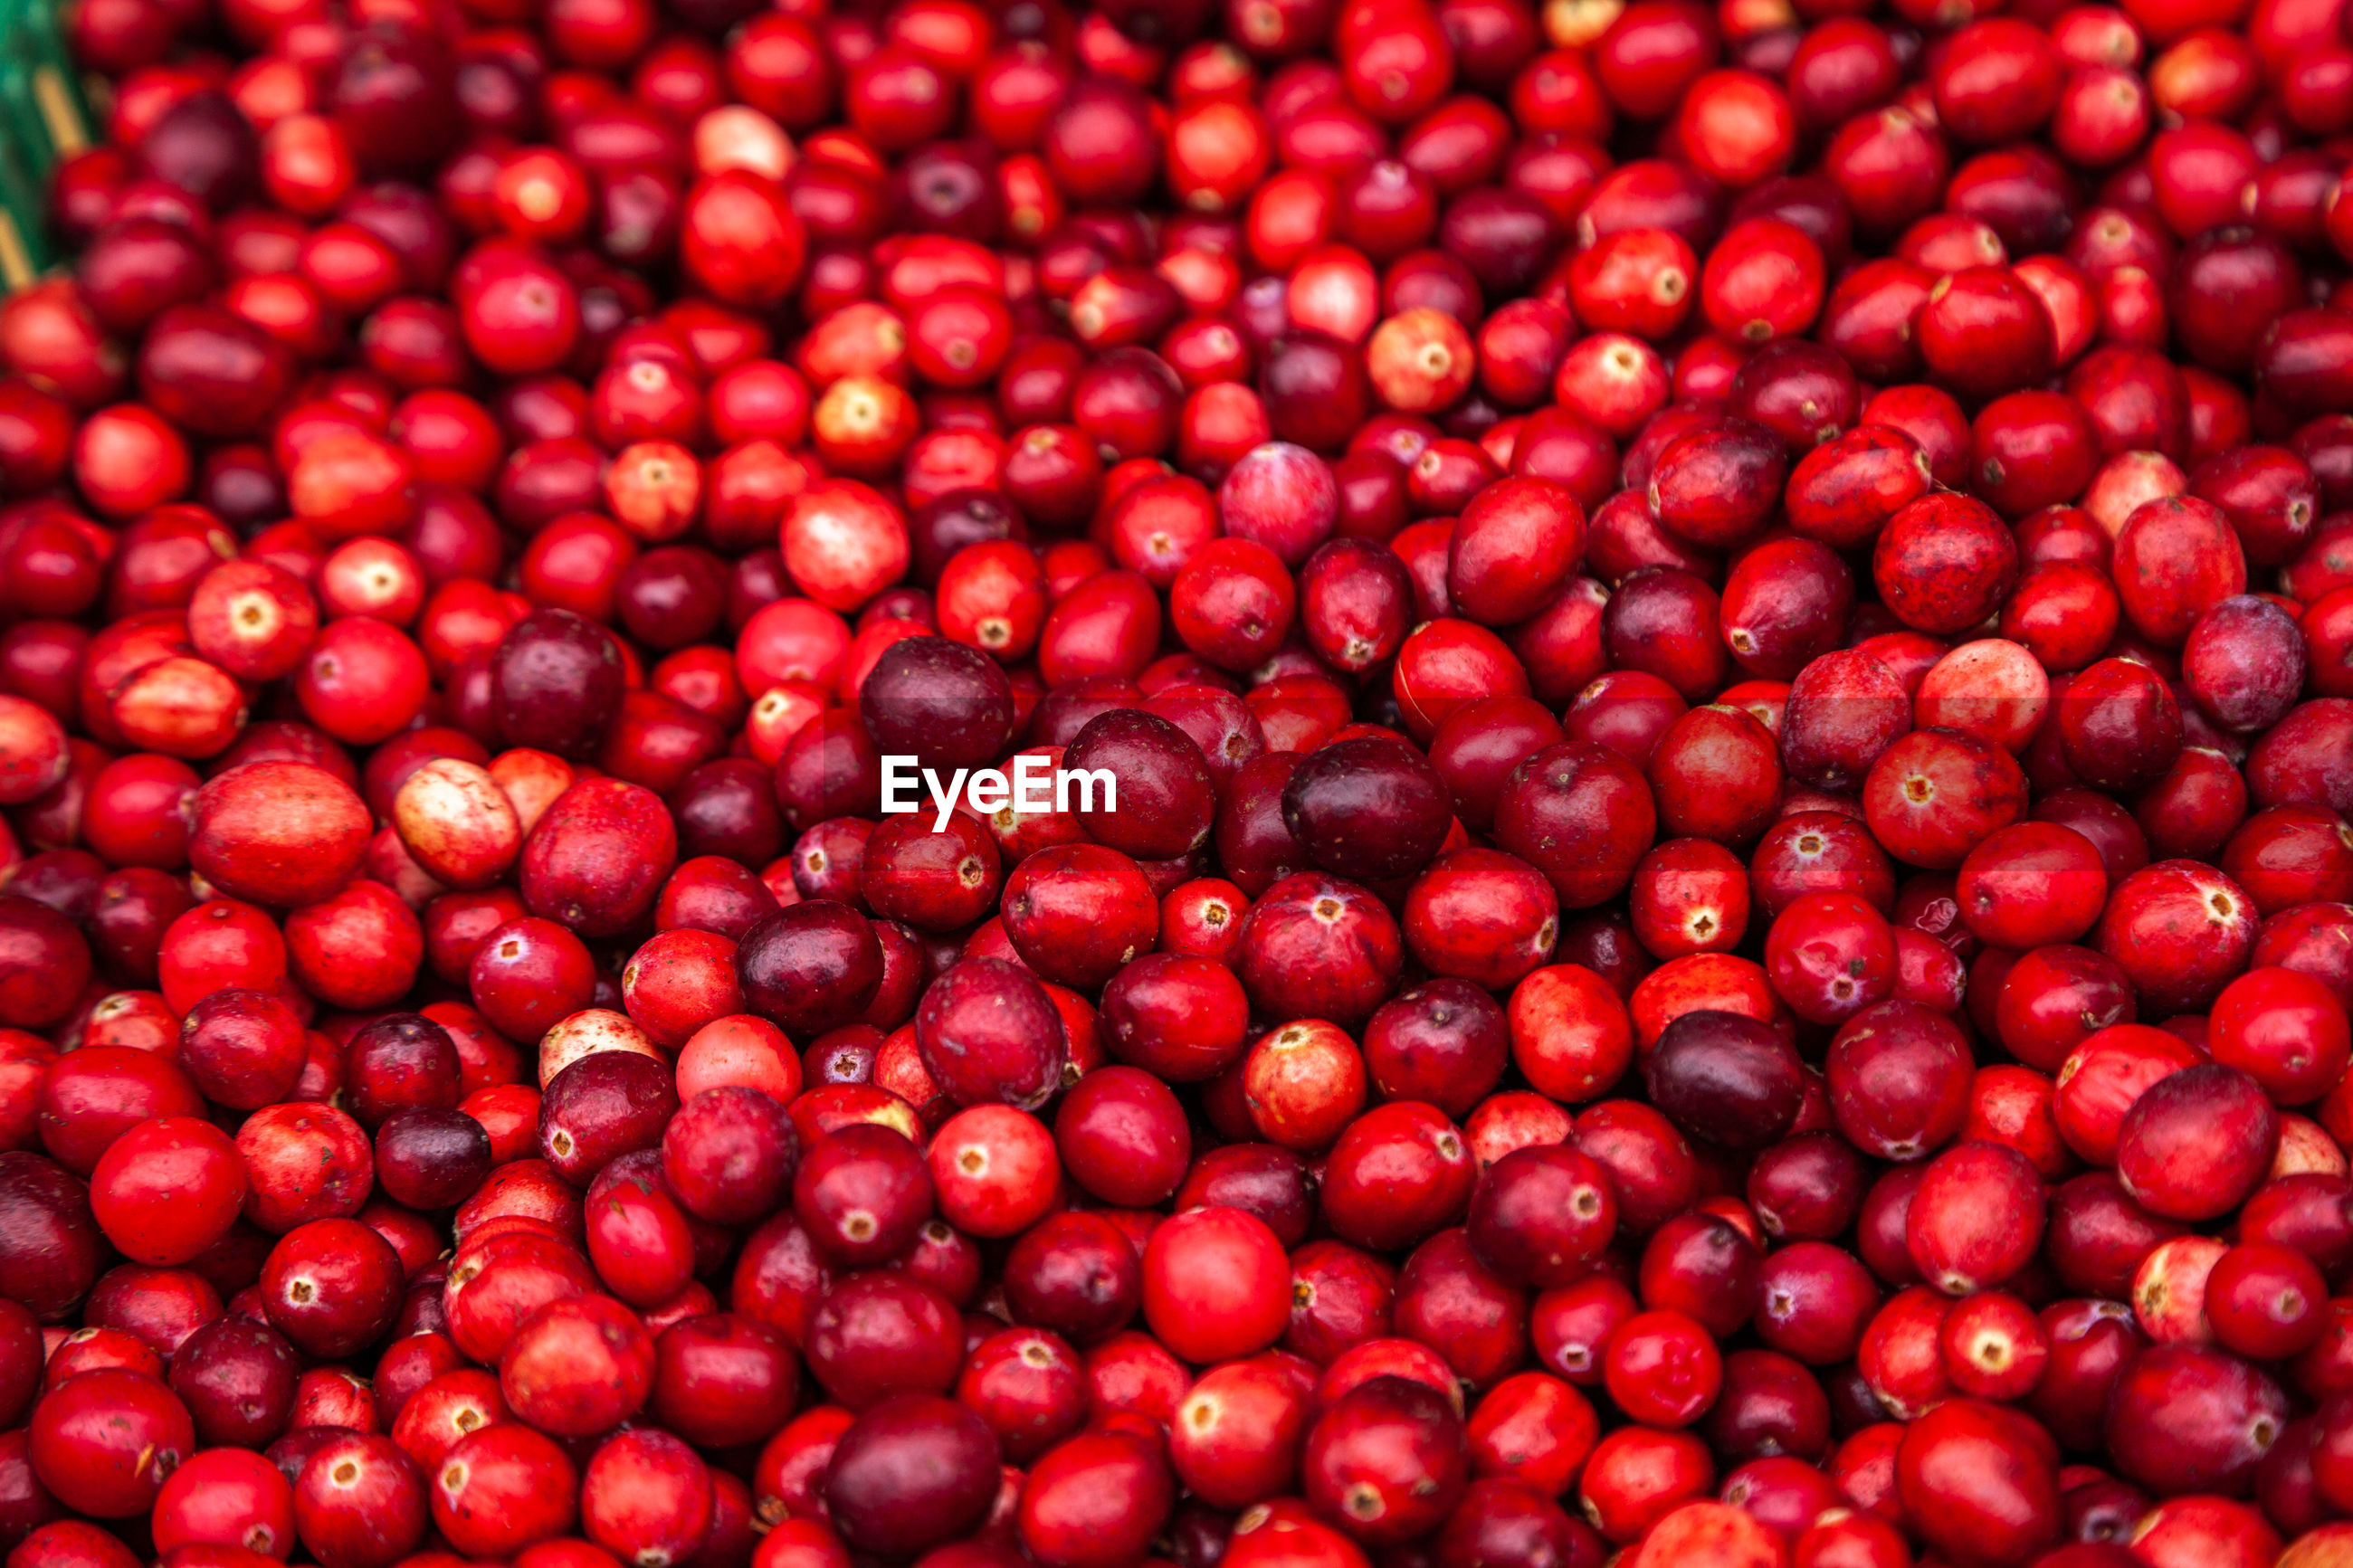 Ripe cranberries for background. red cranberries. fresh organic fruits background. cranberries